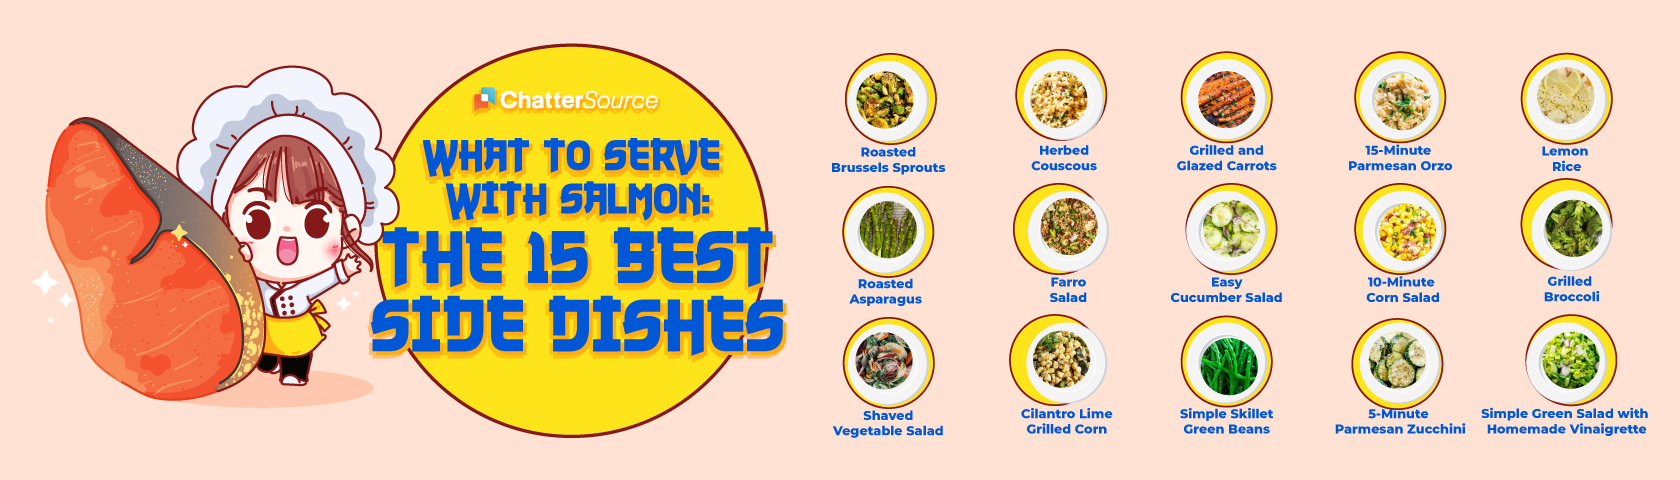 salmon side dishes infographic